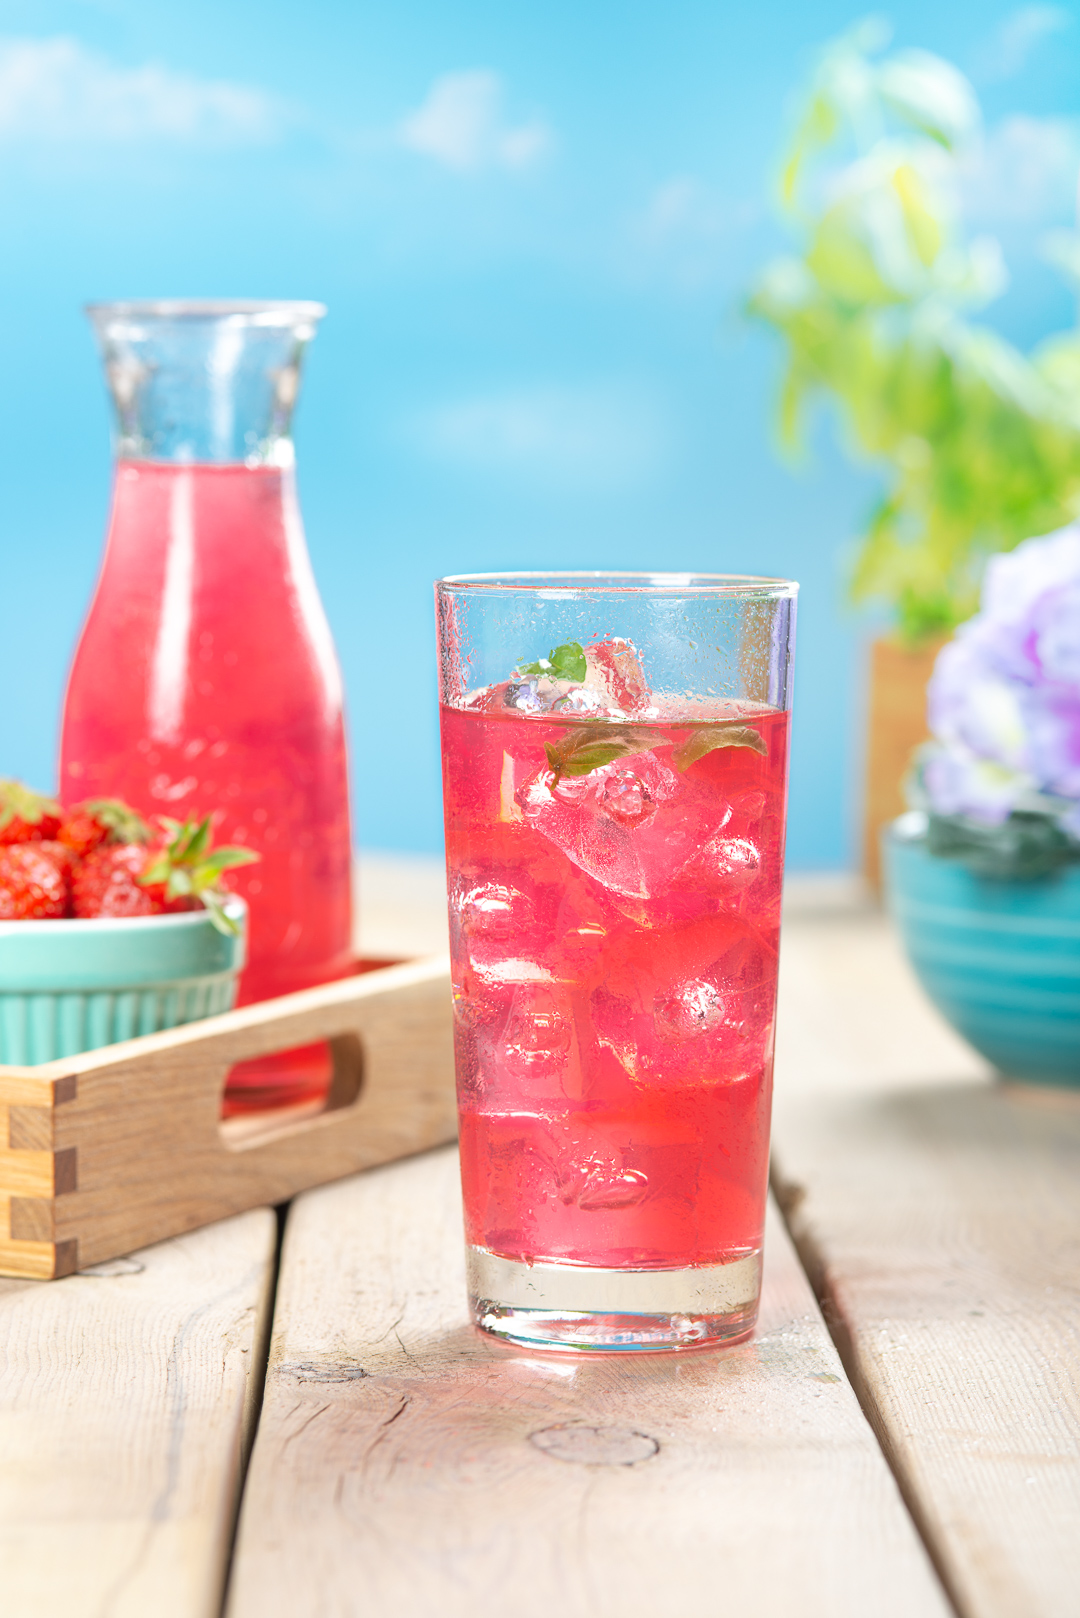 Strawberry ice drink - food and beverage photography